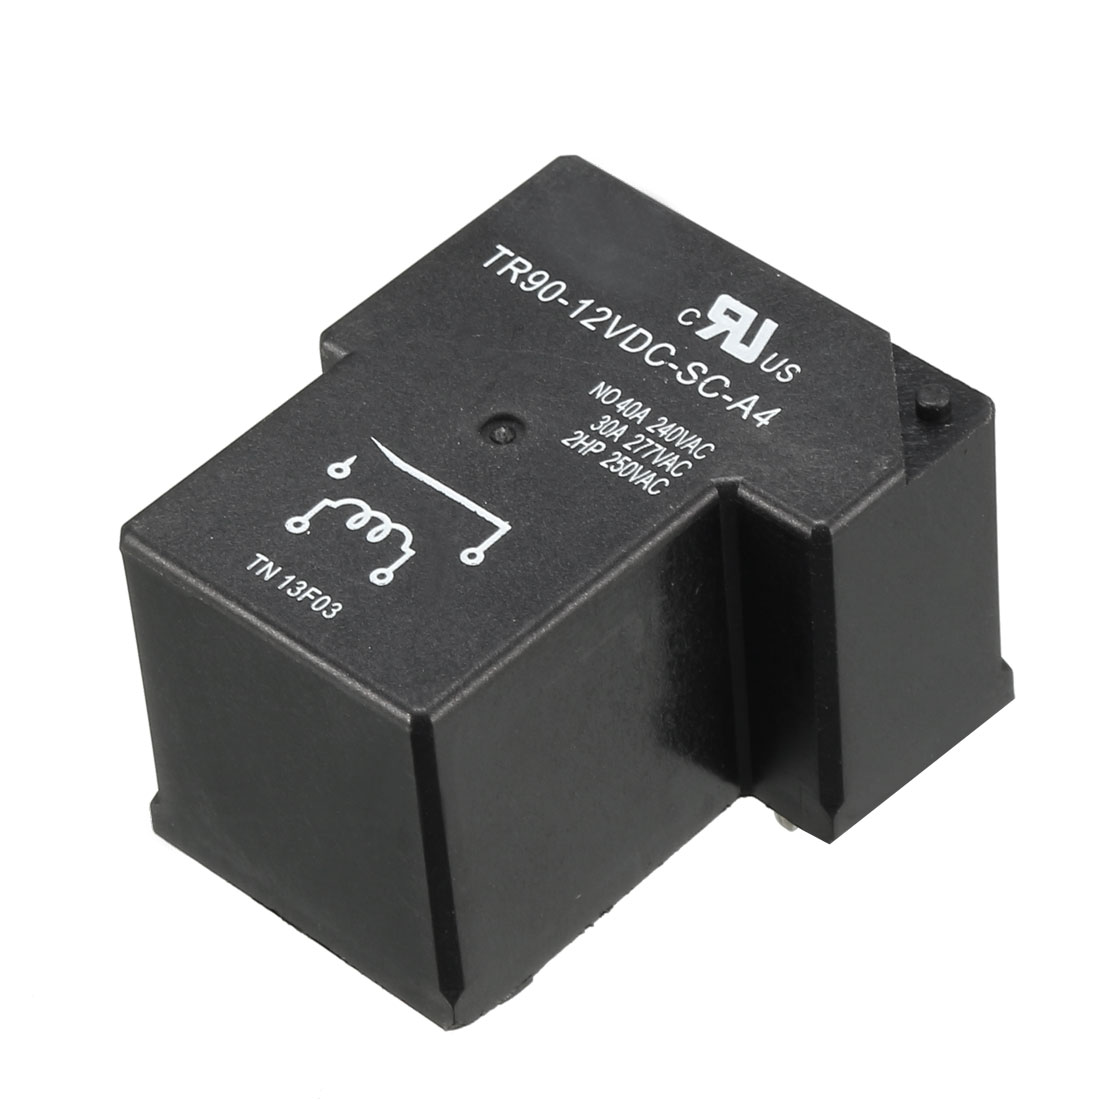 DC 12V Coil 4 Pins Terminal 1NO PCB Mount Electromagnetic Power Relays TR90-12VDC-SC-A4